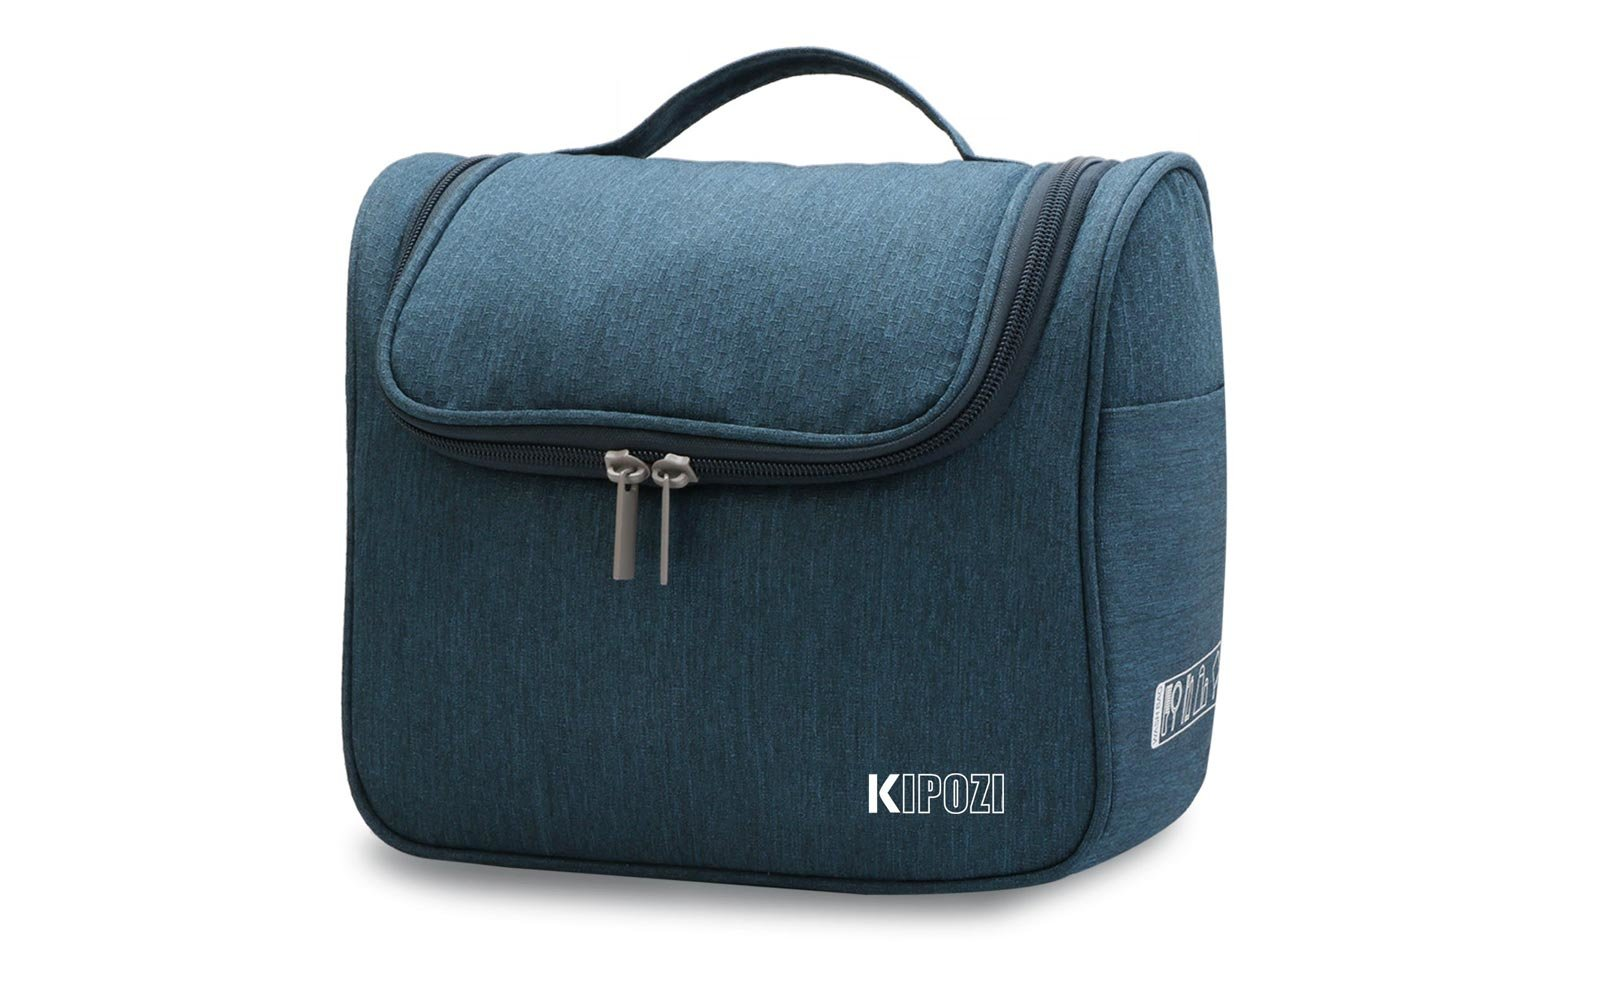 Best Travel Makeup Bags & Cosmetic Cases